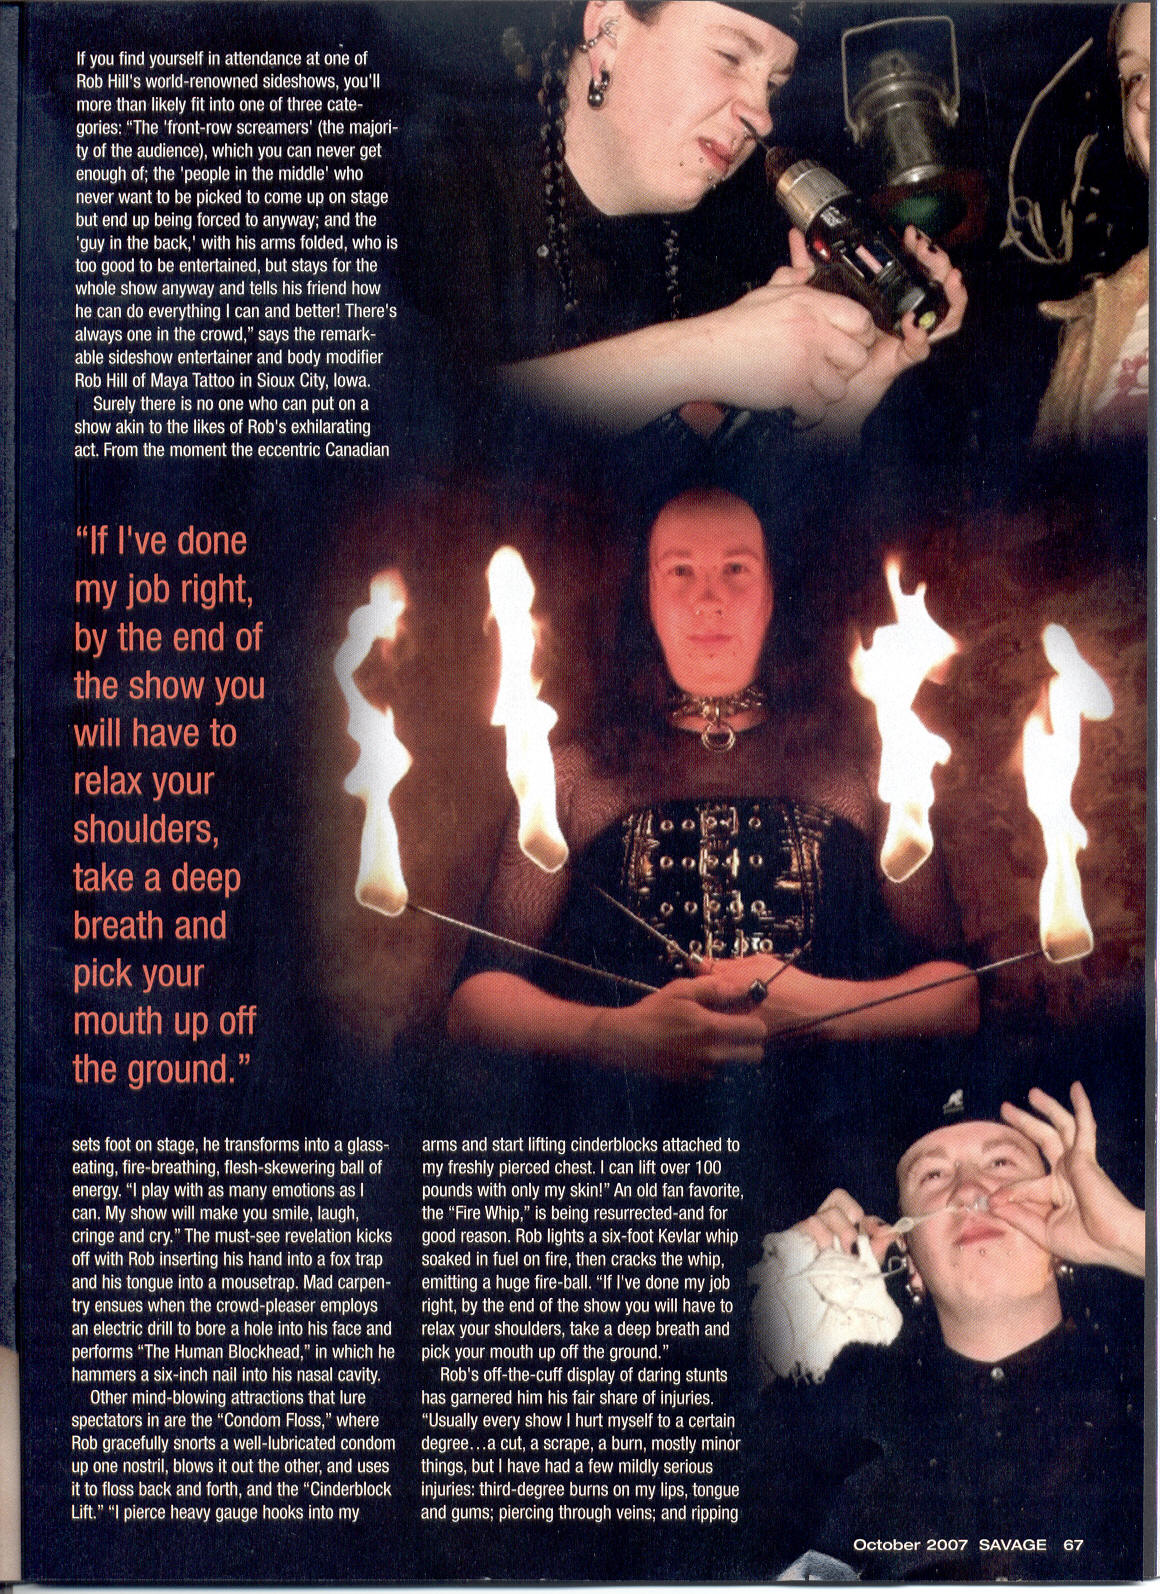 savage magazine october 07 page 2